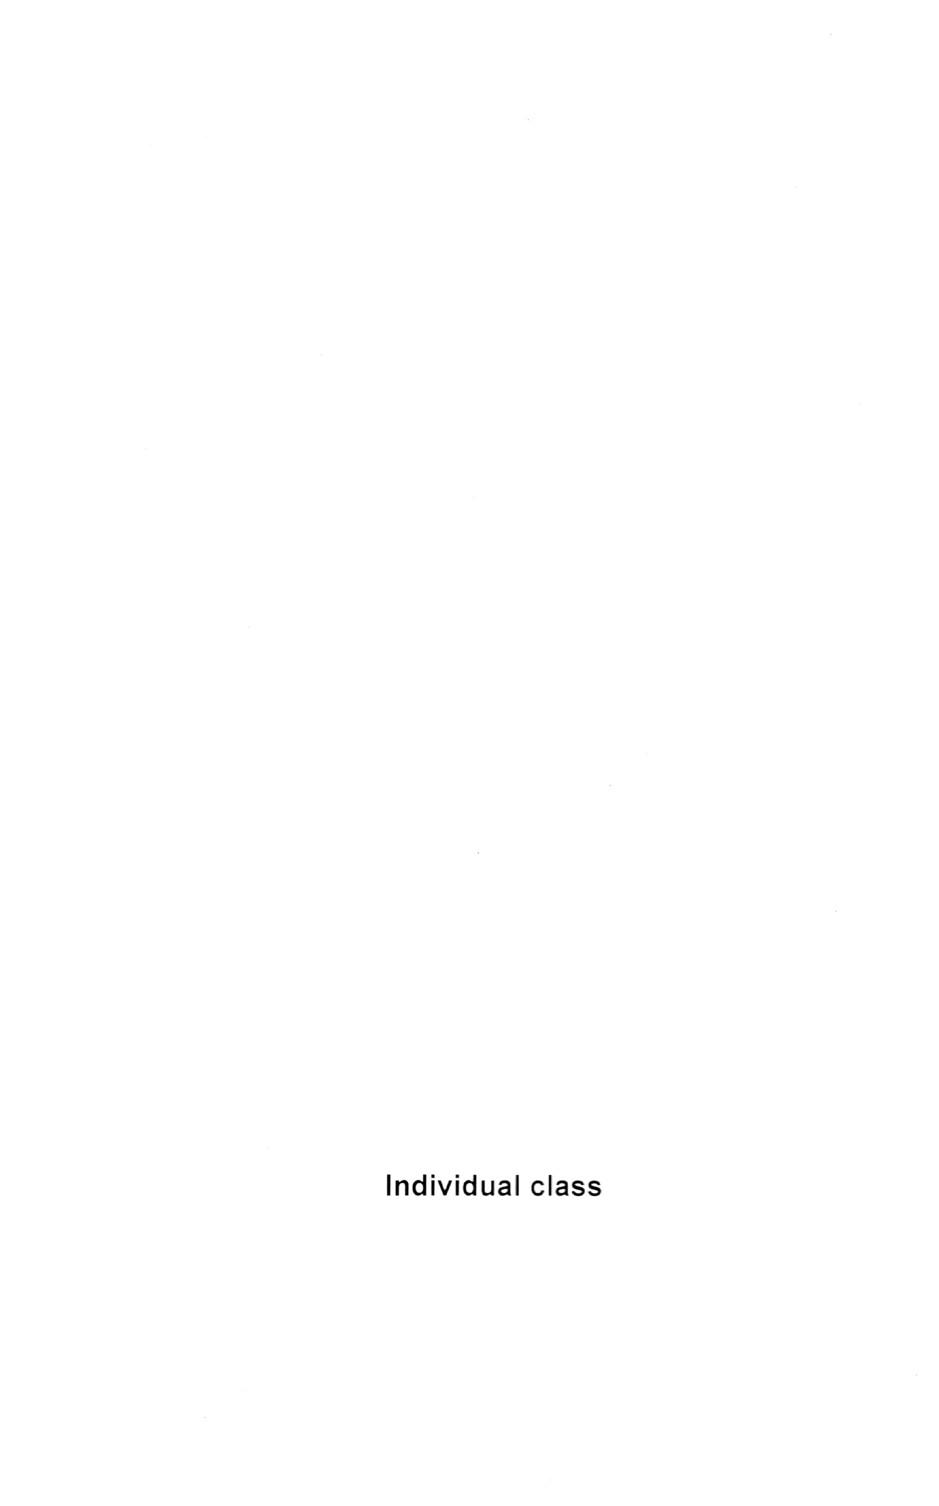 individual class and individual class supplementary lessons 2